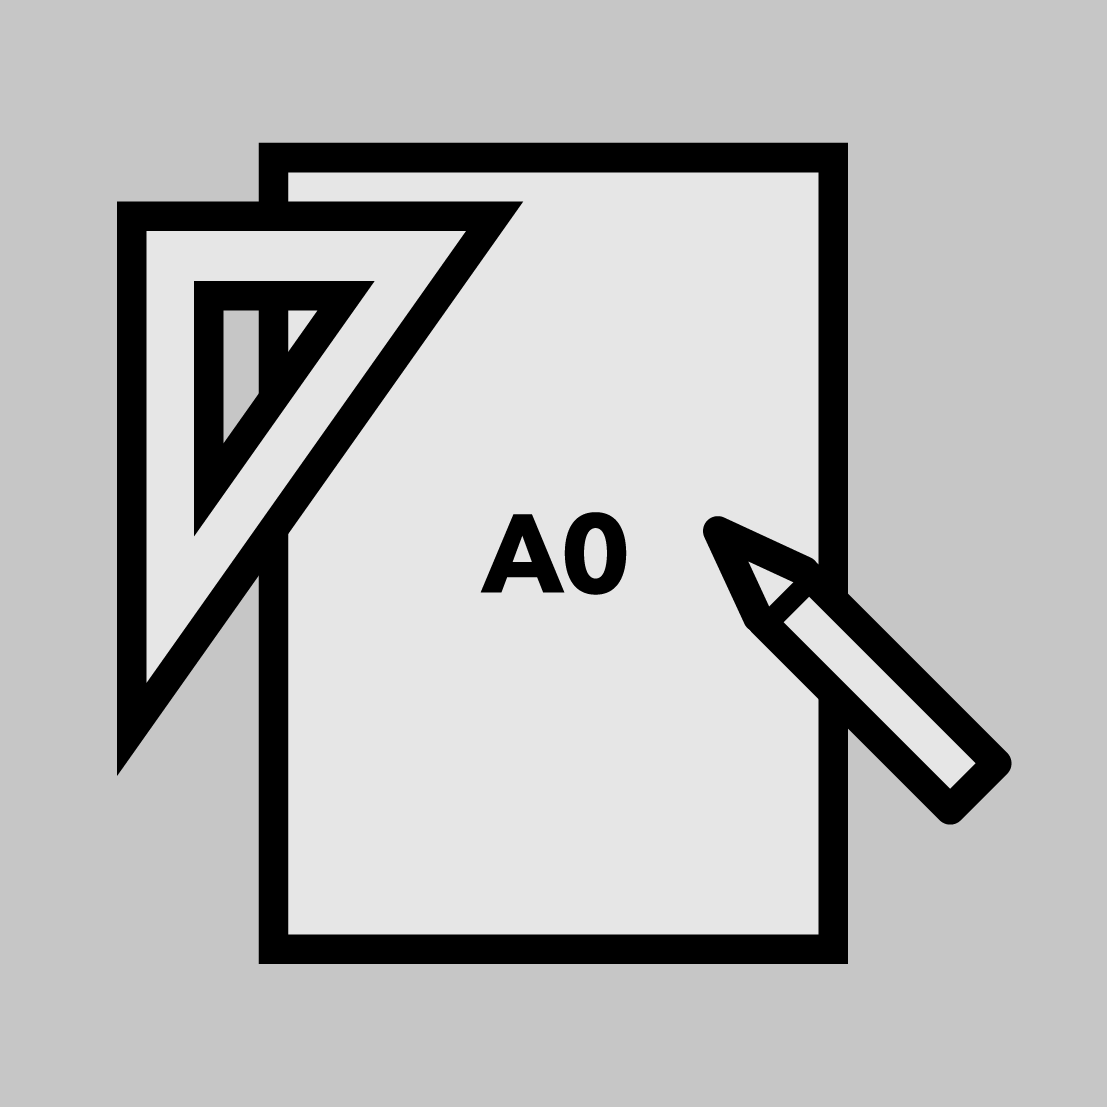 a0-portrait-icon-02.png